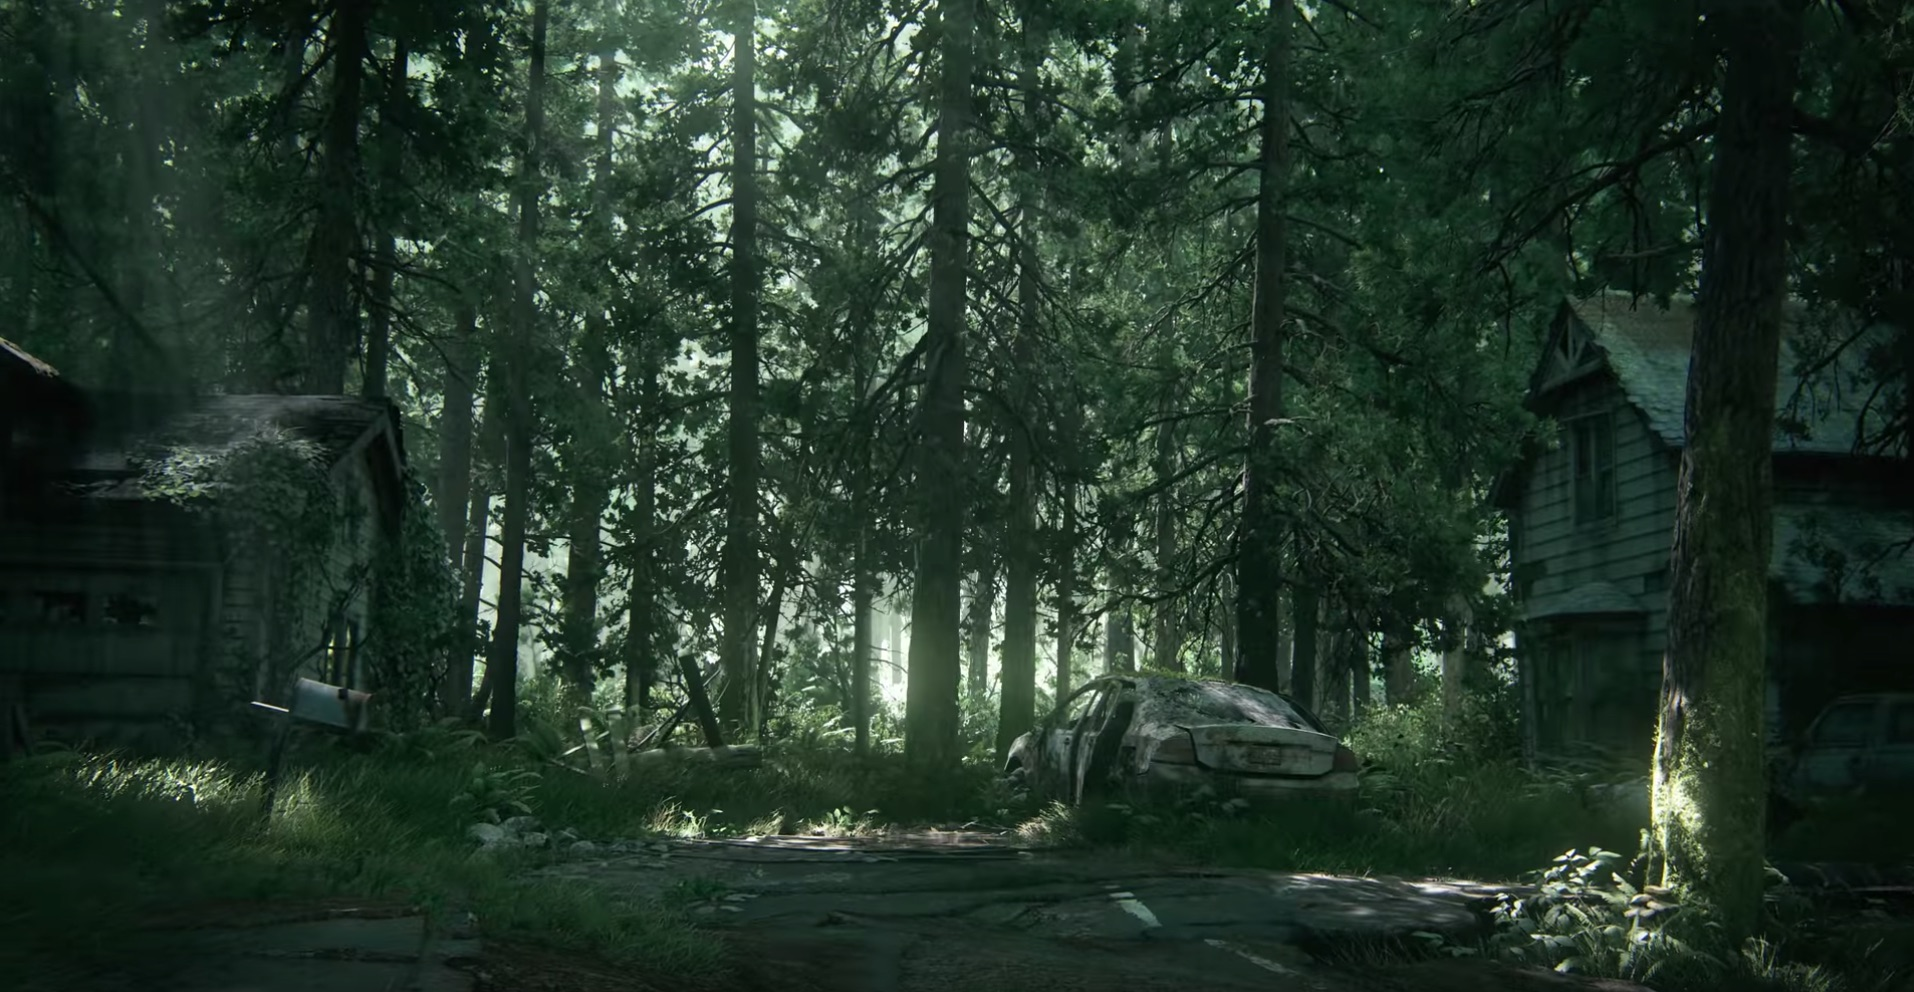 The third and fourth shots include a downed telephone pole and an old, abandoned car, and abandoned houses; we now know this takes place in the modern era or long after it, but still we're short on details.